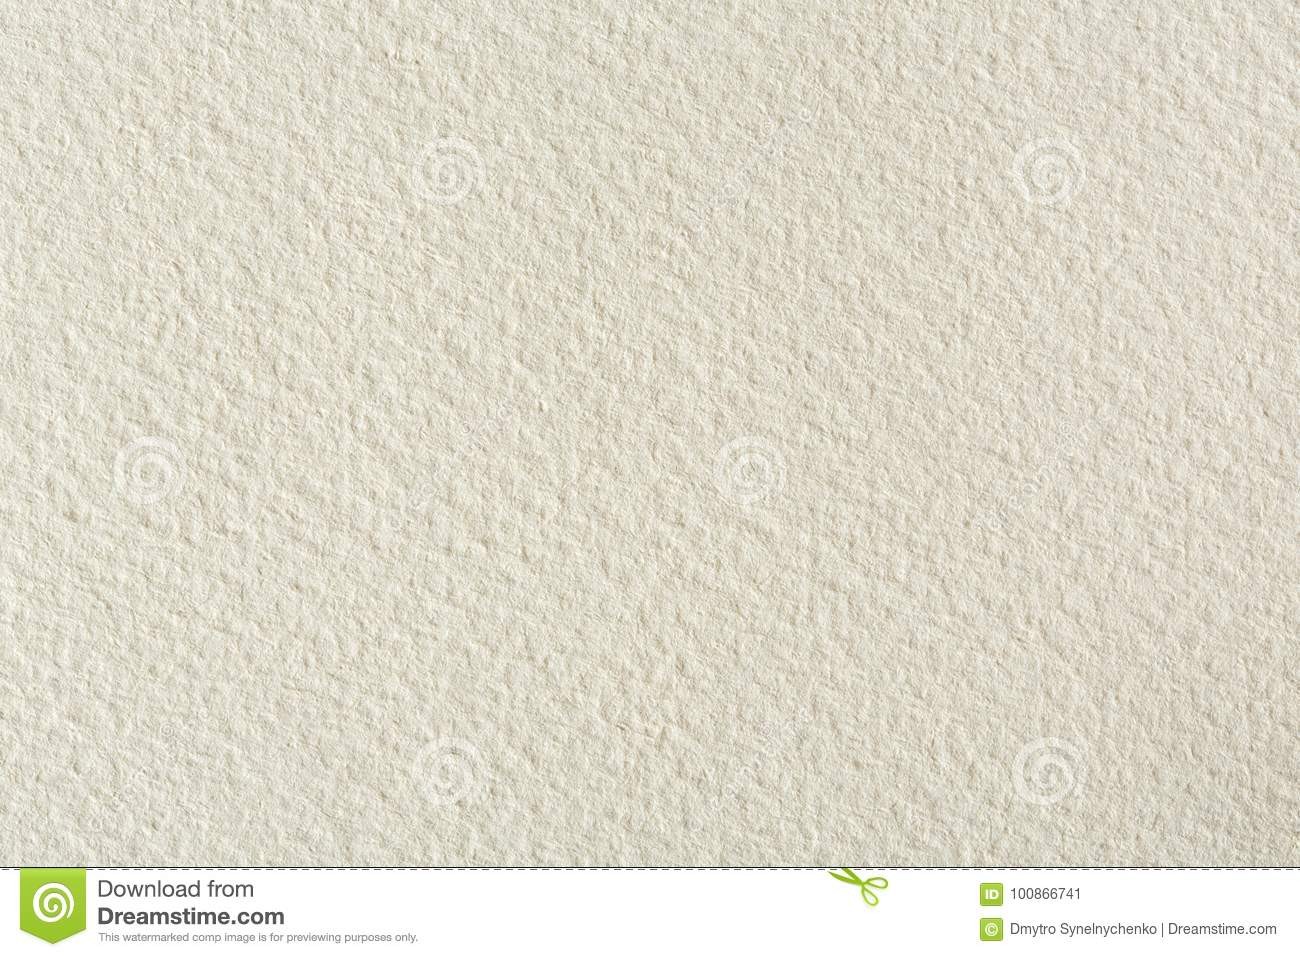 Water-colour paper texture background in light beige tone.